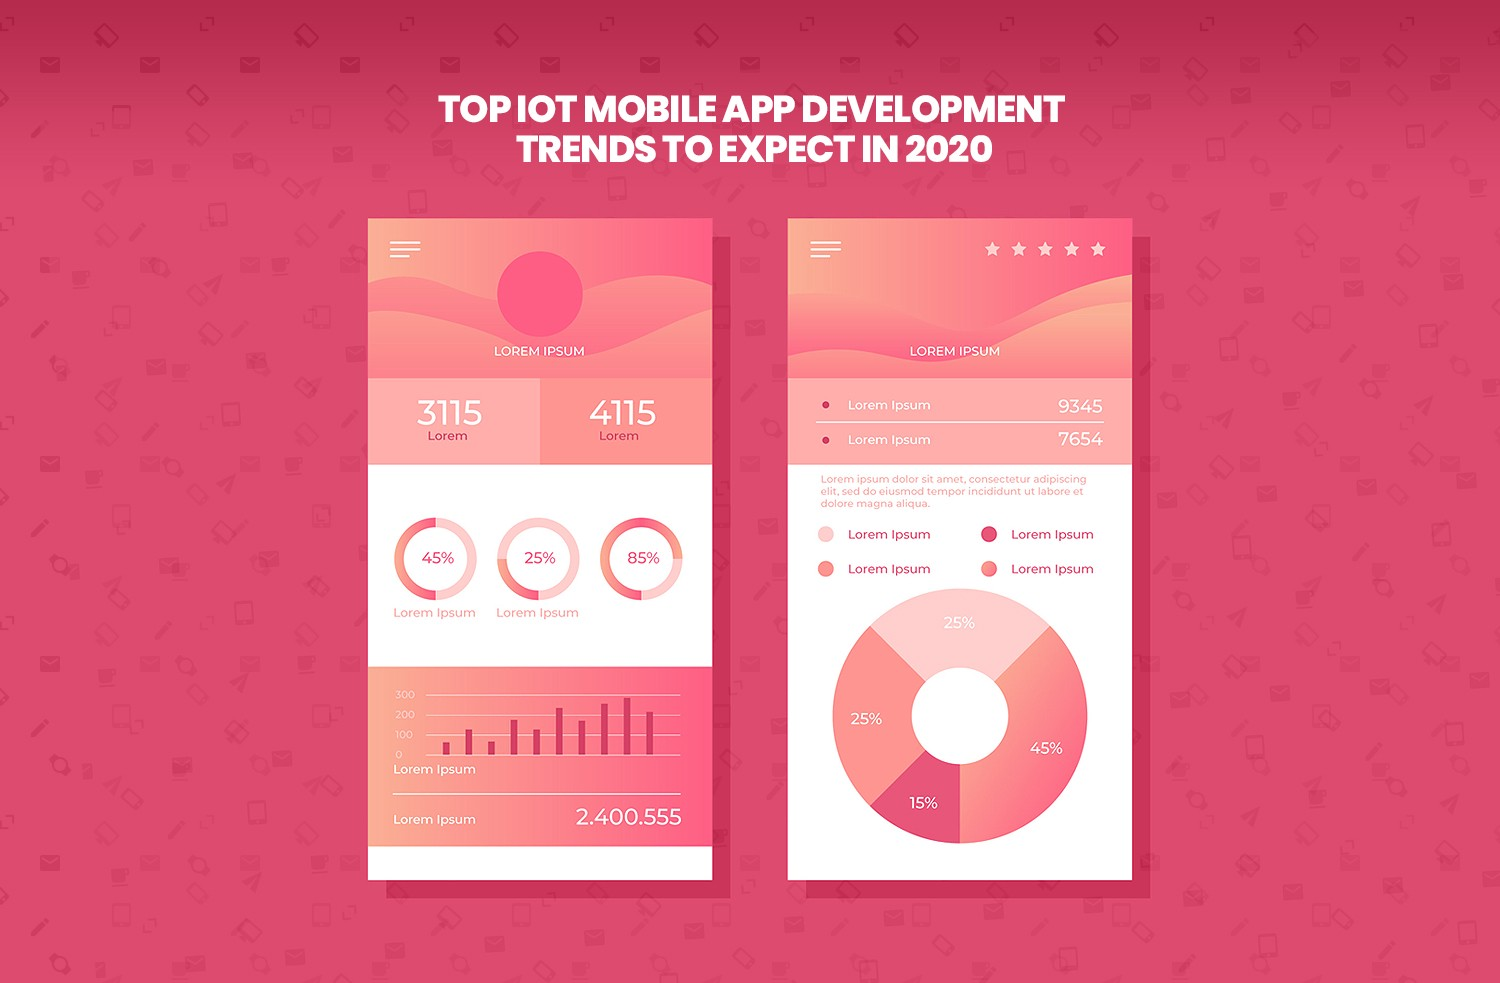 Product Trends 2020.Top 14 Iot Mobile App Development Trends To Expect In 2020